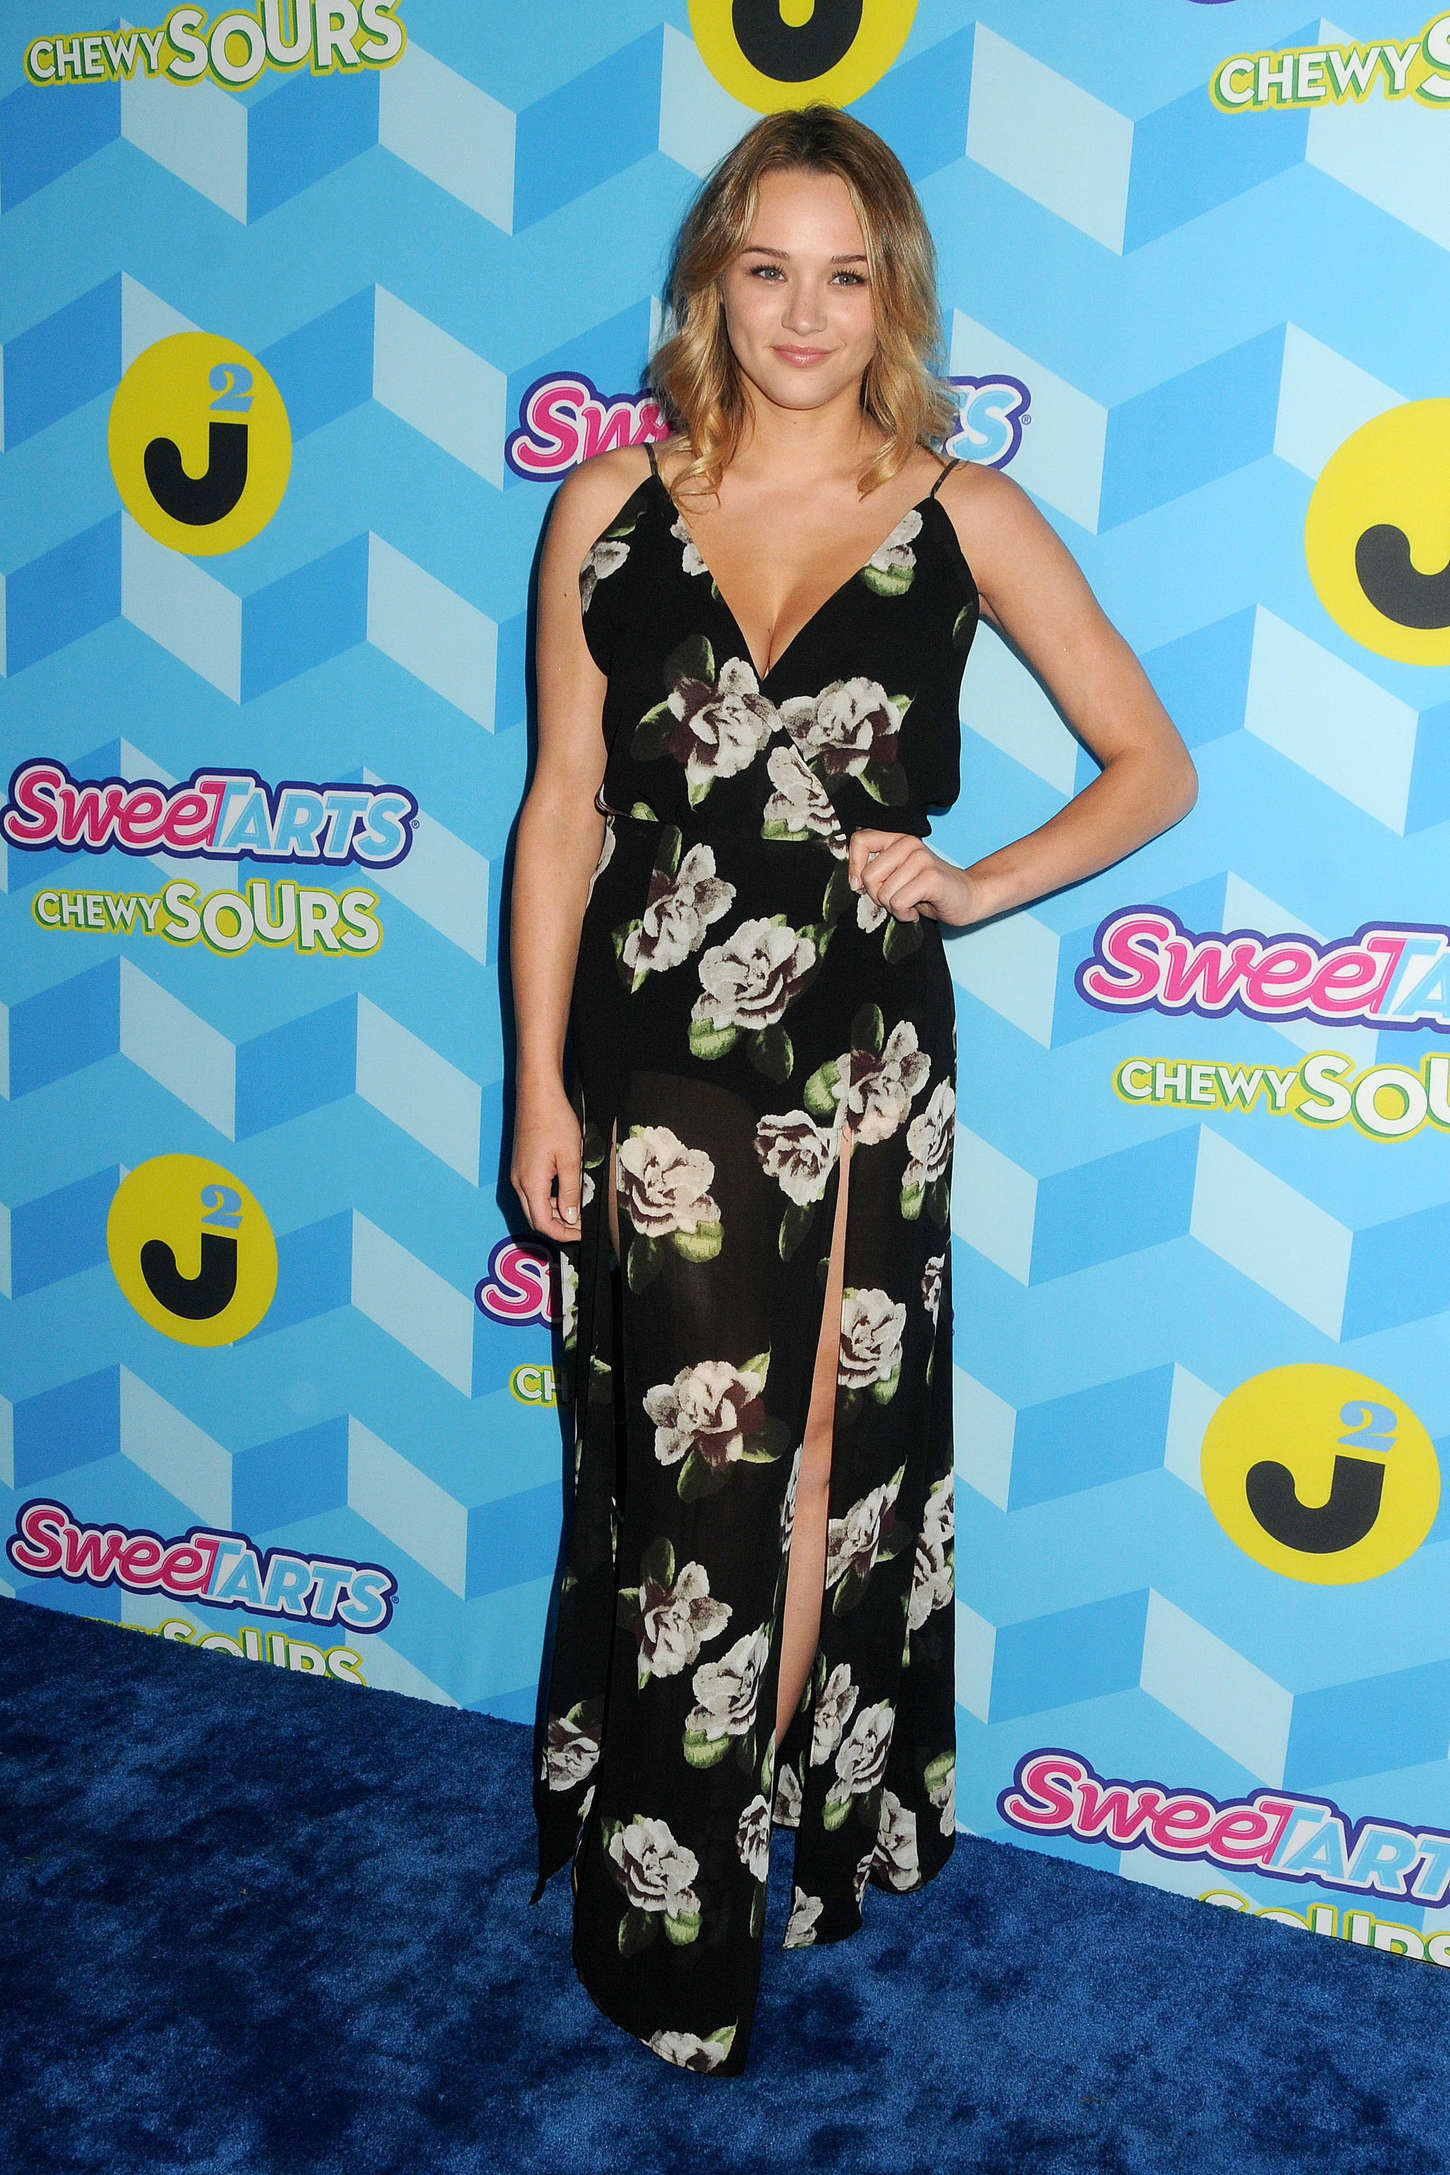 Hunter Haley King Just Jared Summer Bash Pool Party in Hollywood